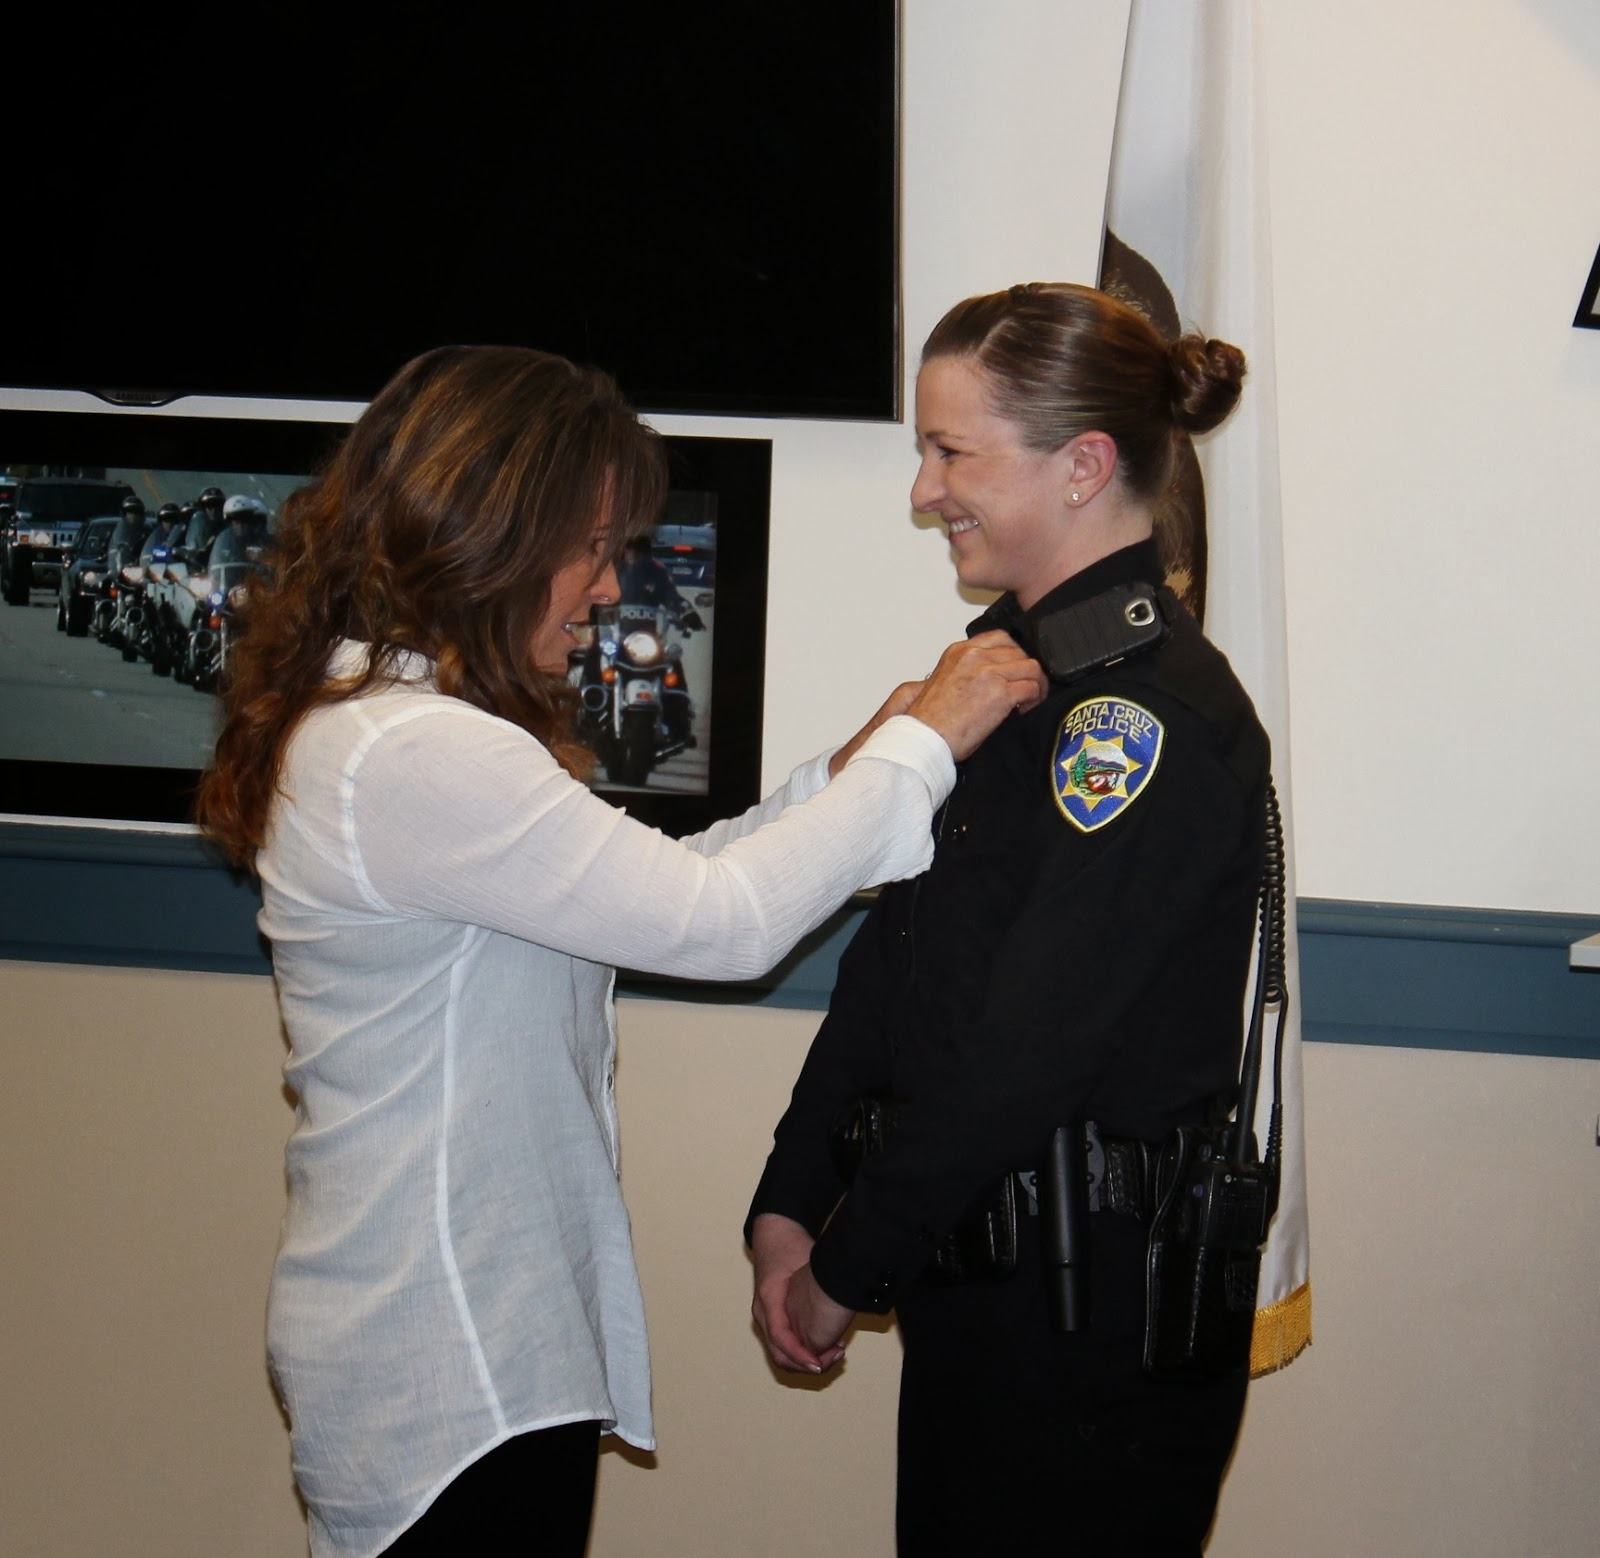 Santa Cruz Police: Welcome To Our Newest Police Officer